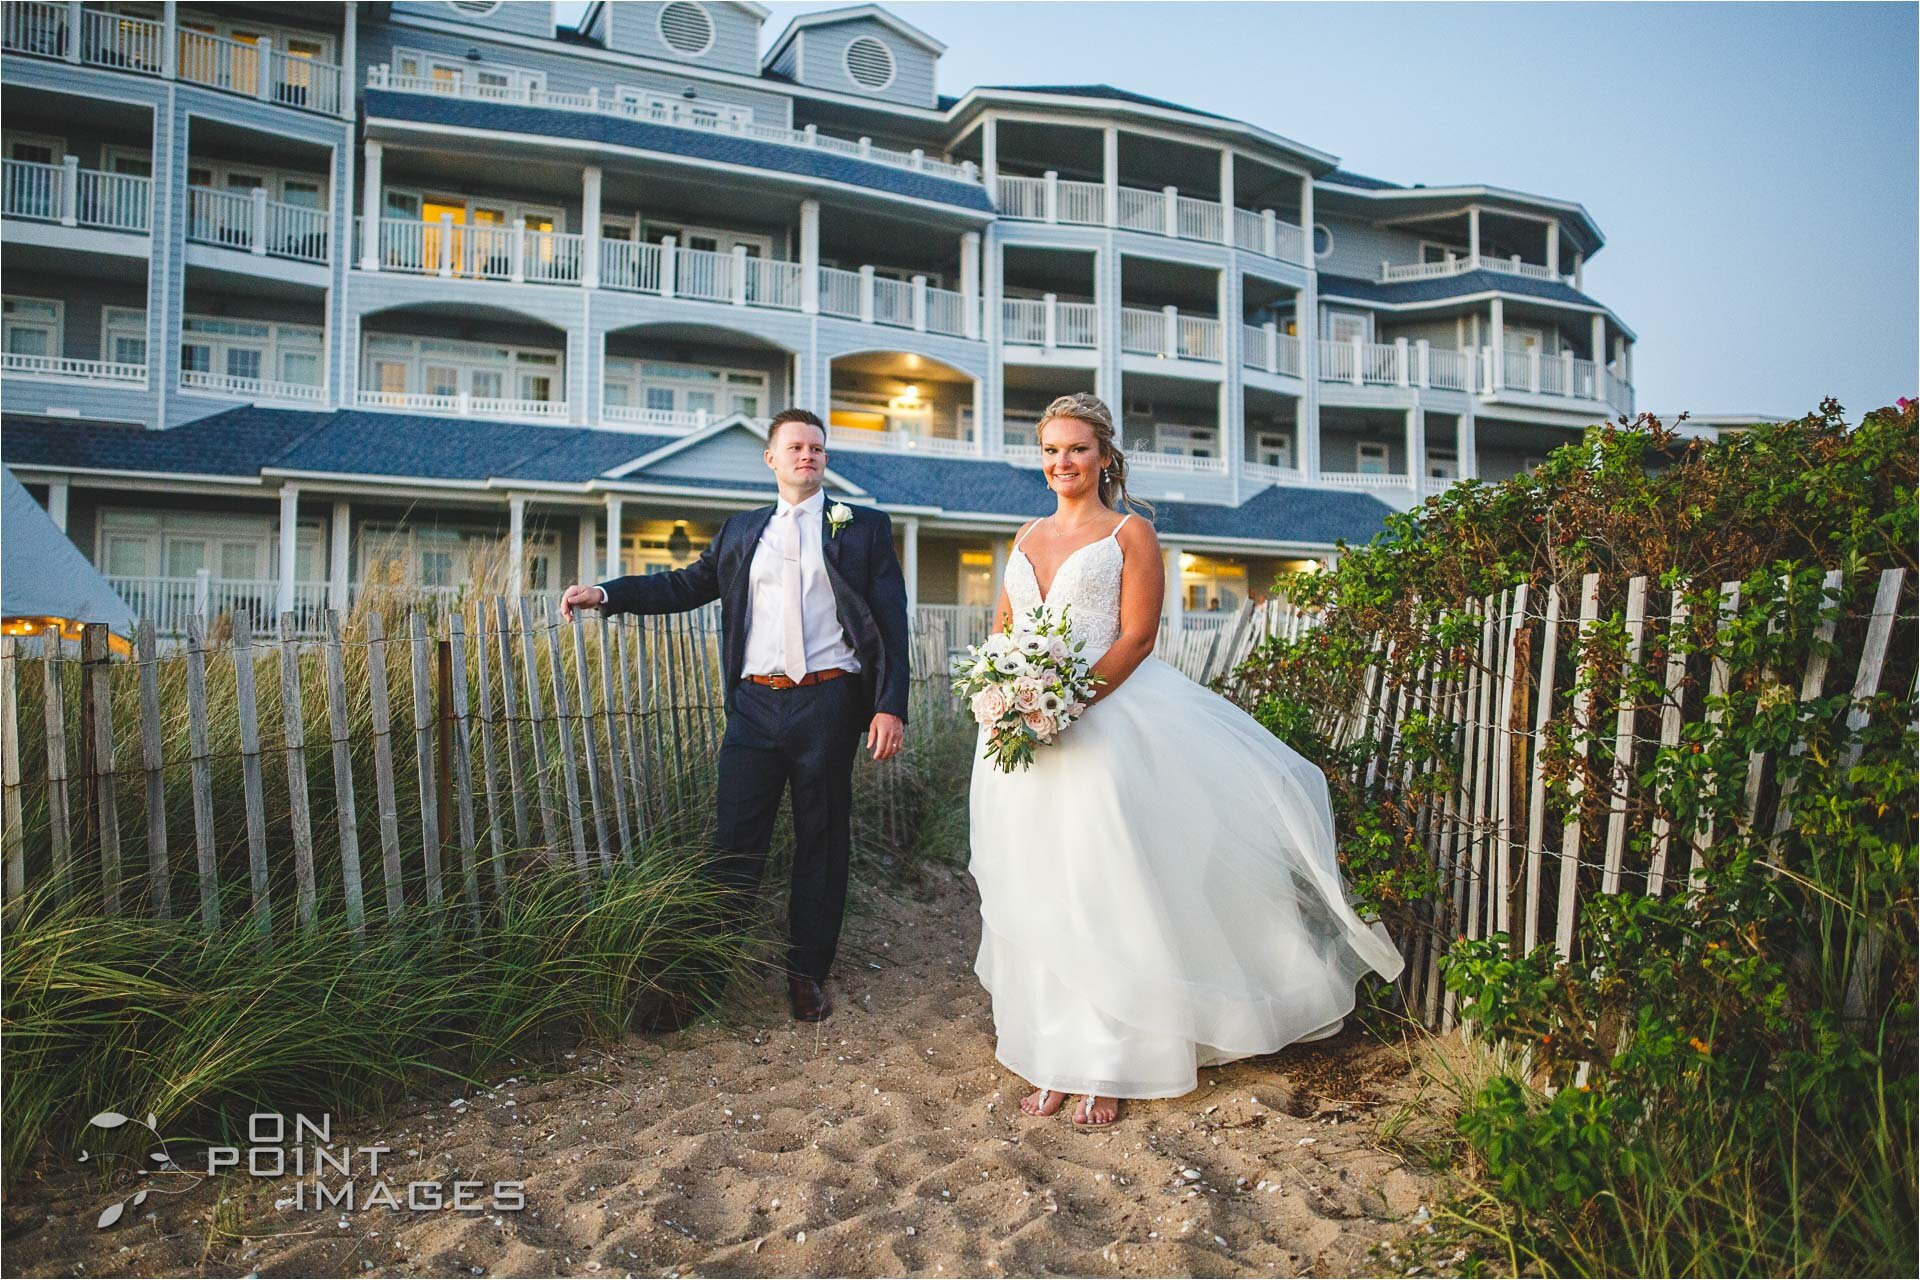 Kimberly Michael S Wedding At Madison Beach Hotel On Point Images Connecticut Wedding Photographer